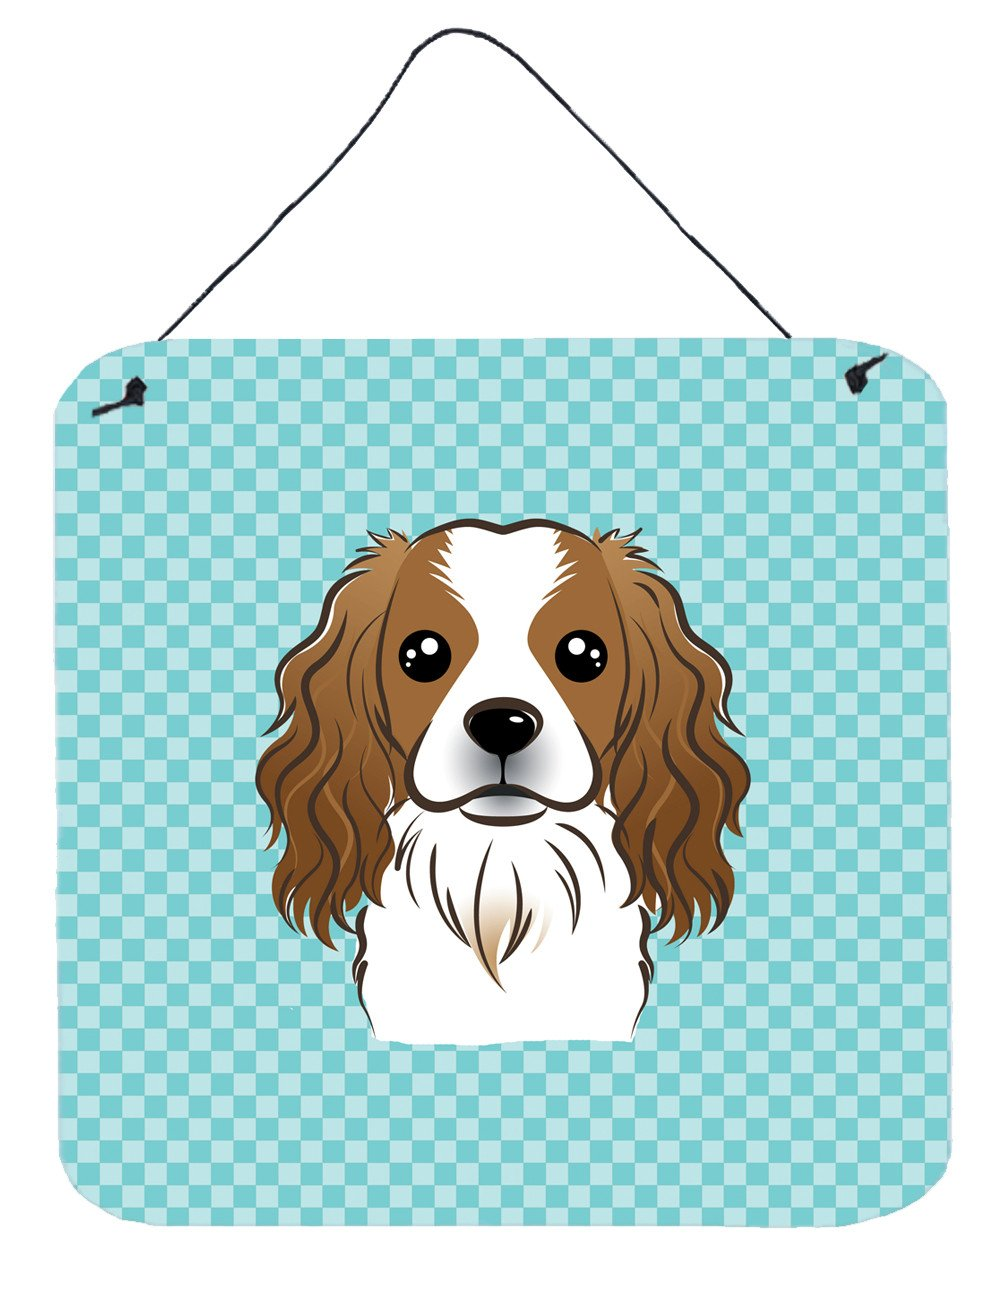 Checkerboard Blue Cavalier Spaniel Wall or Door Hanging Prints BB1162DS66 by Caroline's Treasures